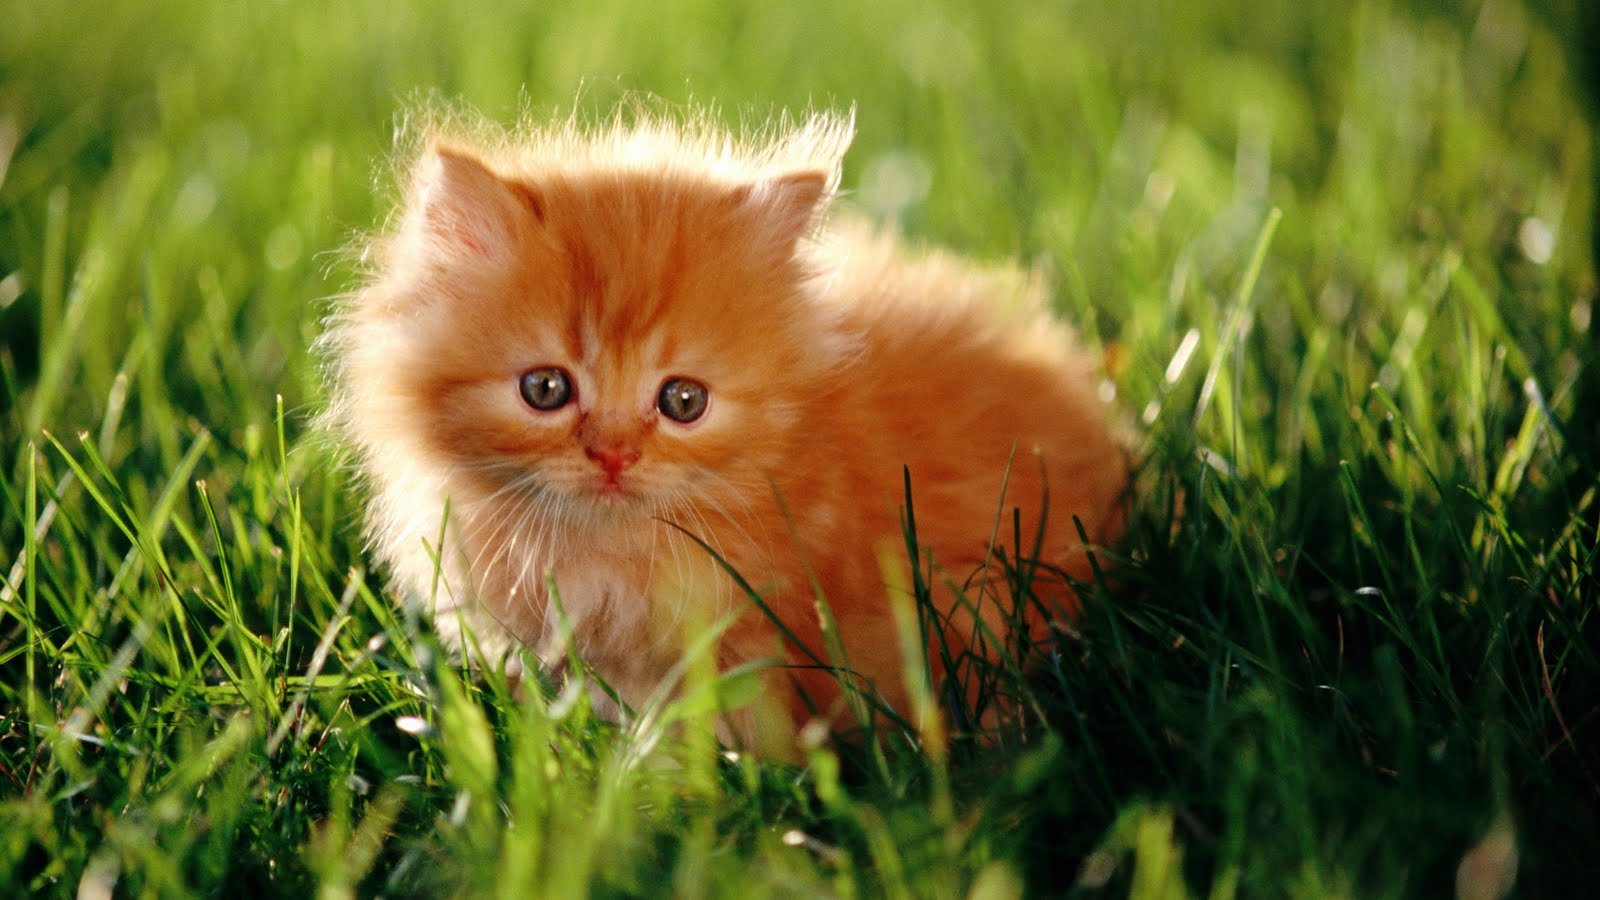 Cat Hd Wallpapers 1080p Wallpapersafari